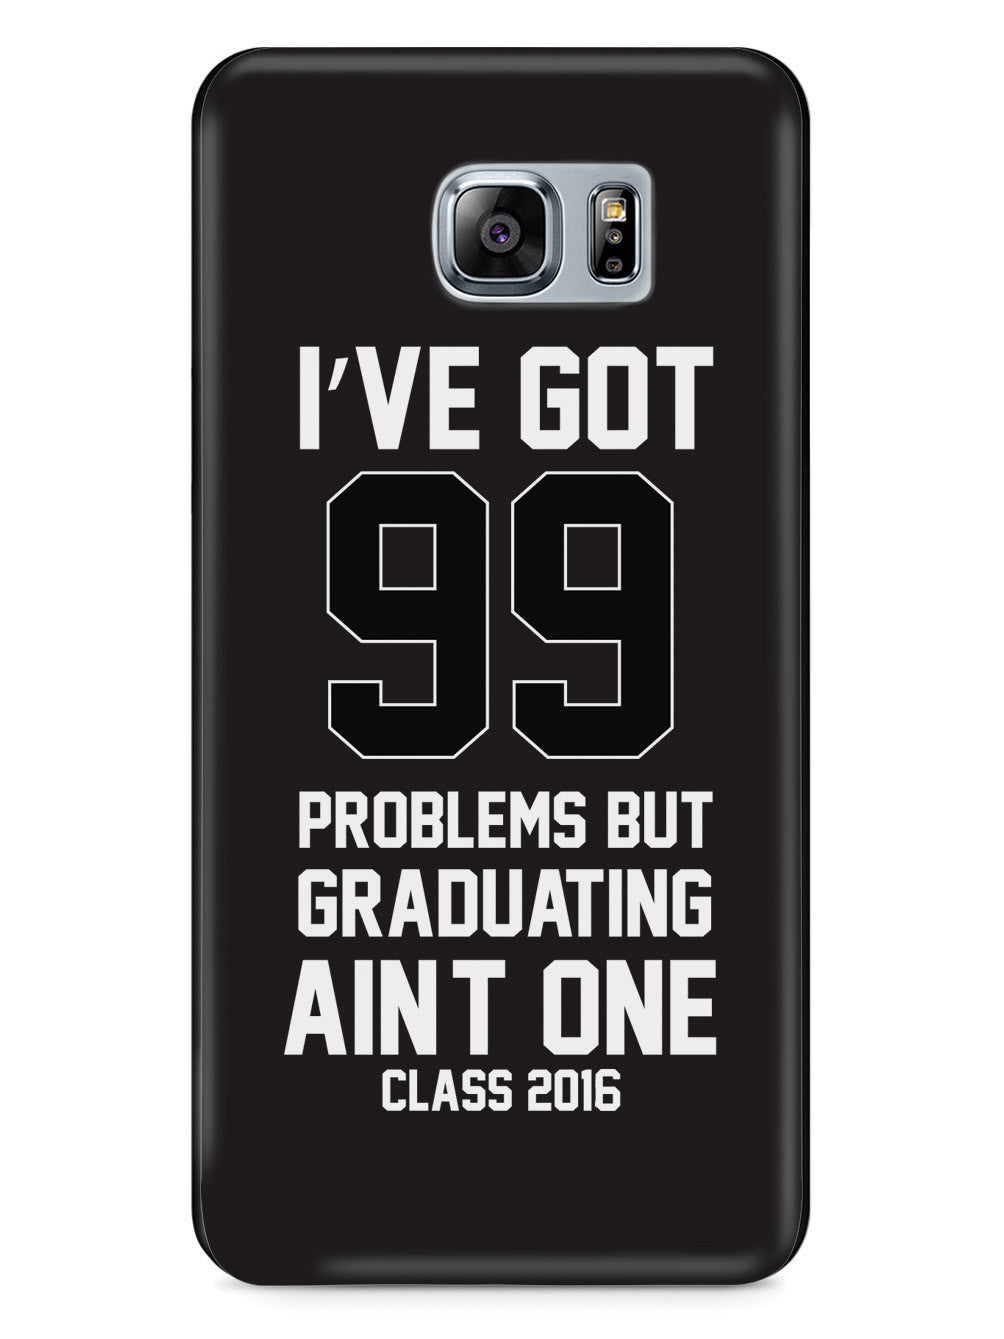 99 Problems - Graduating Ain't One Case